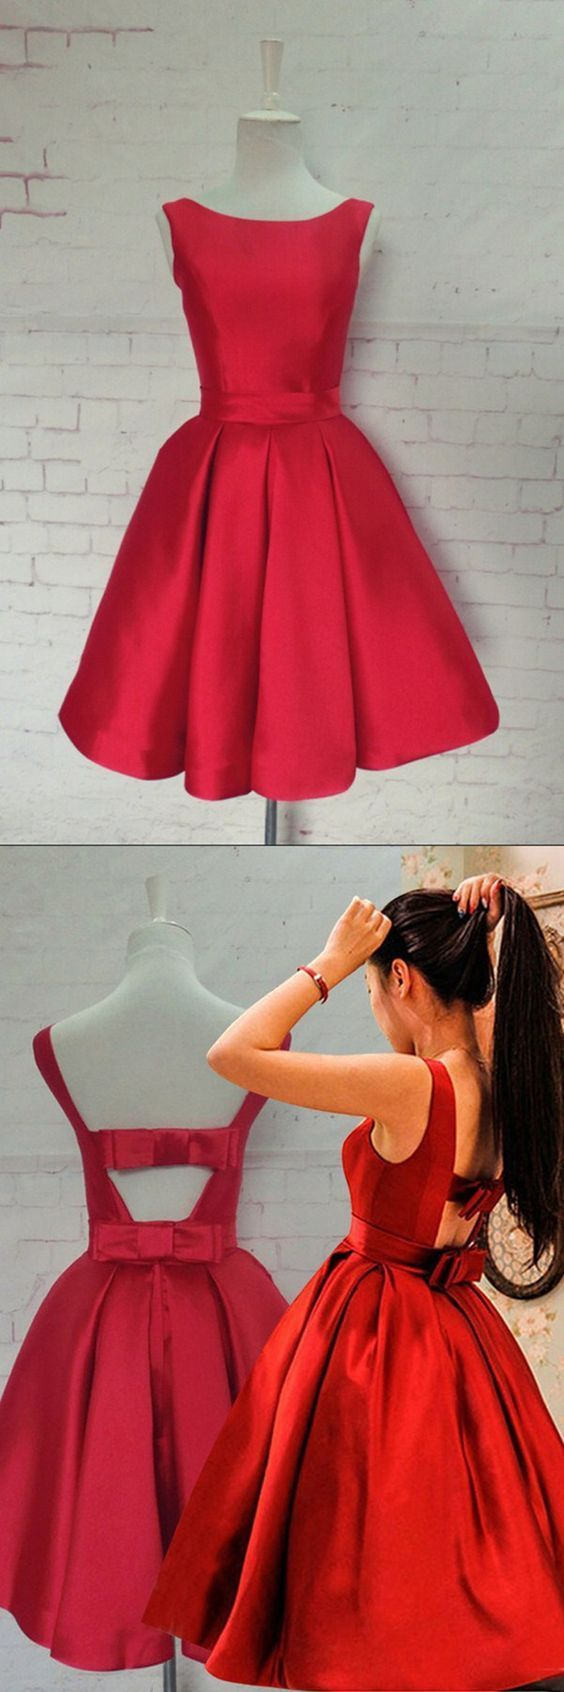 Uhc red homecoming gownsnew prom dressesshort prom gowns